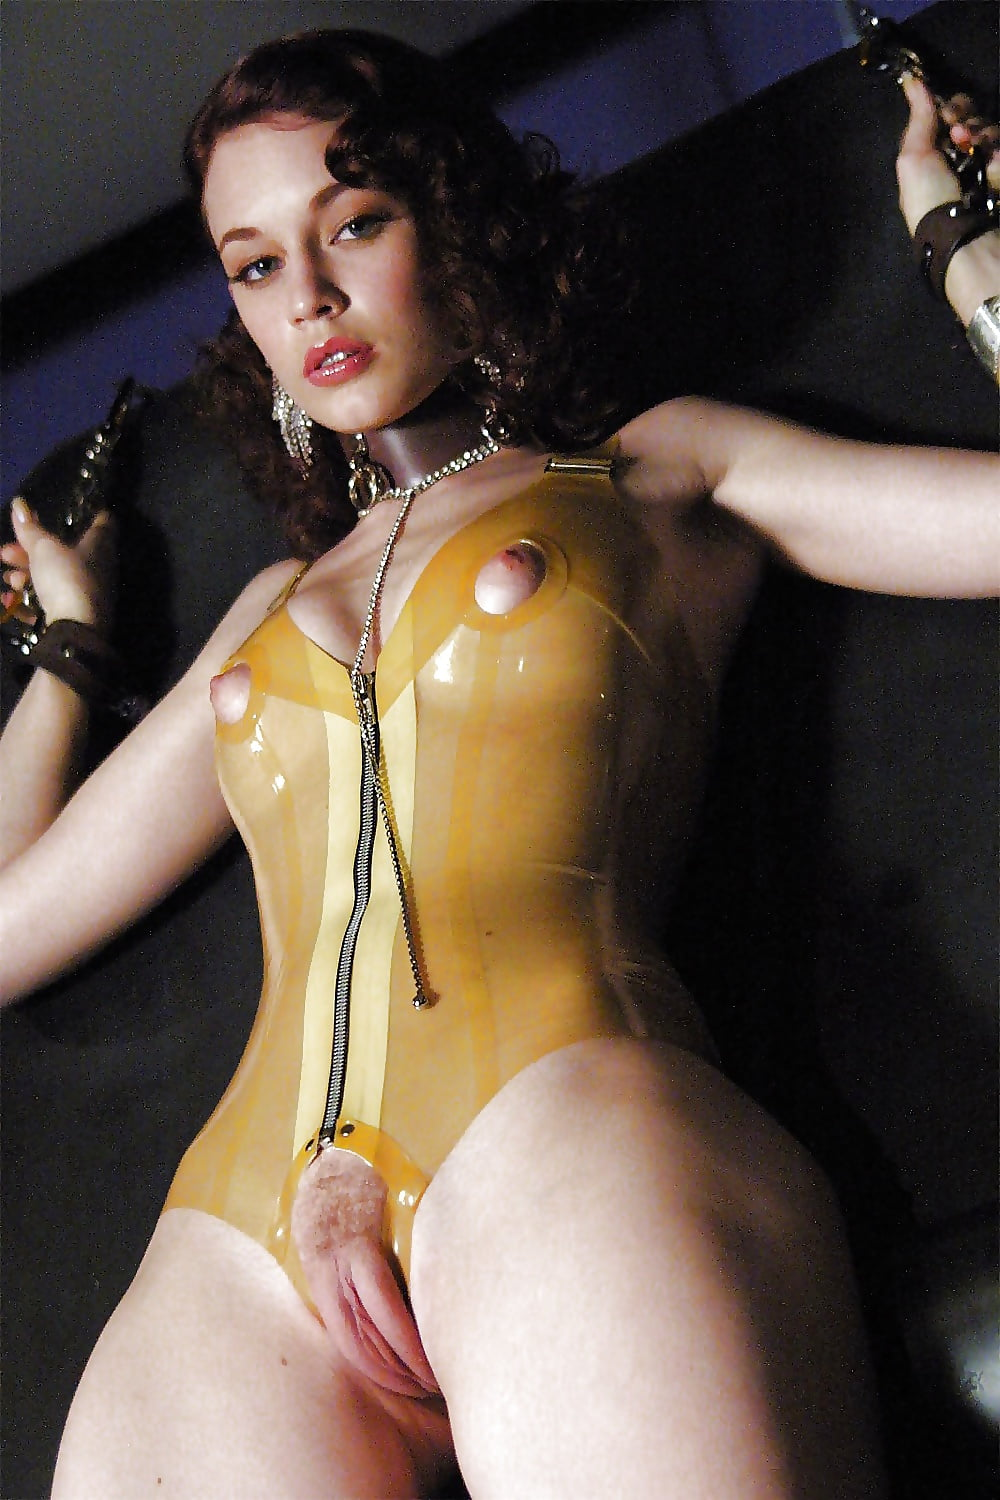 girls-nude-while-putting-on-latex-hot-piano-sex